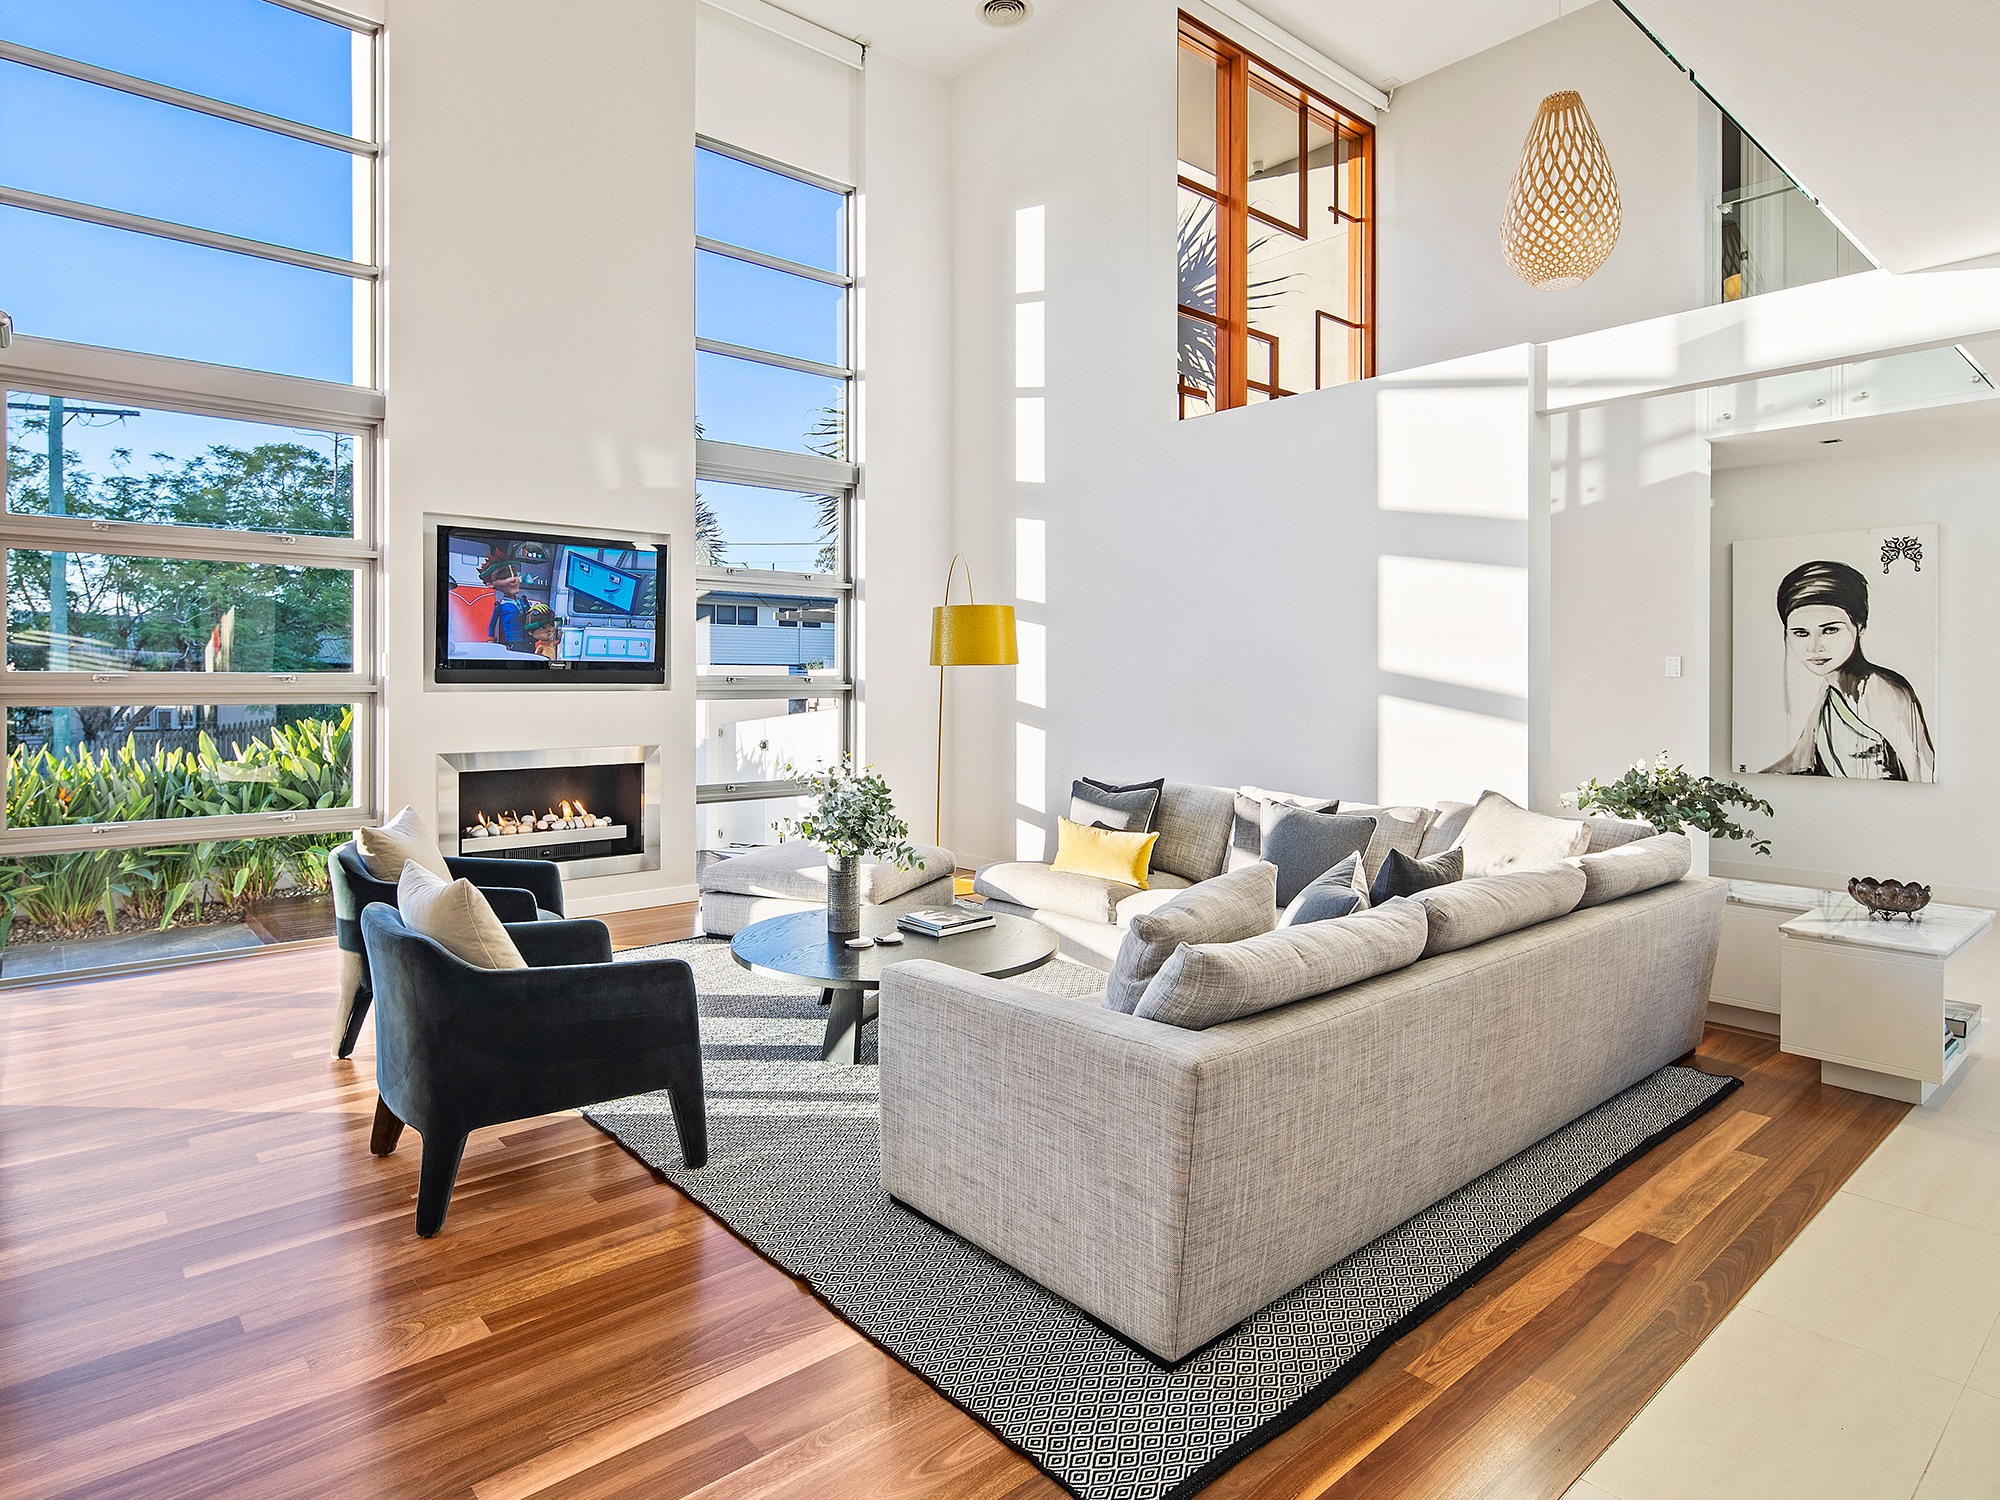 sun-filled living room with timber floors